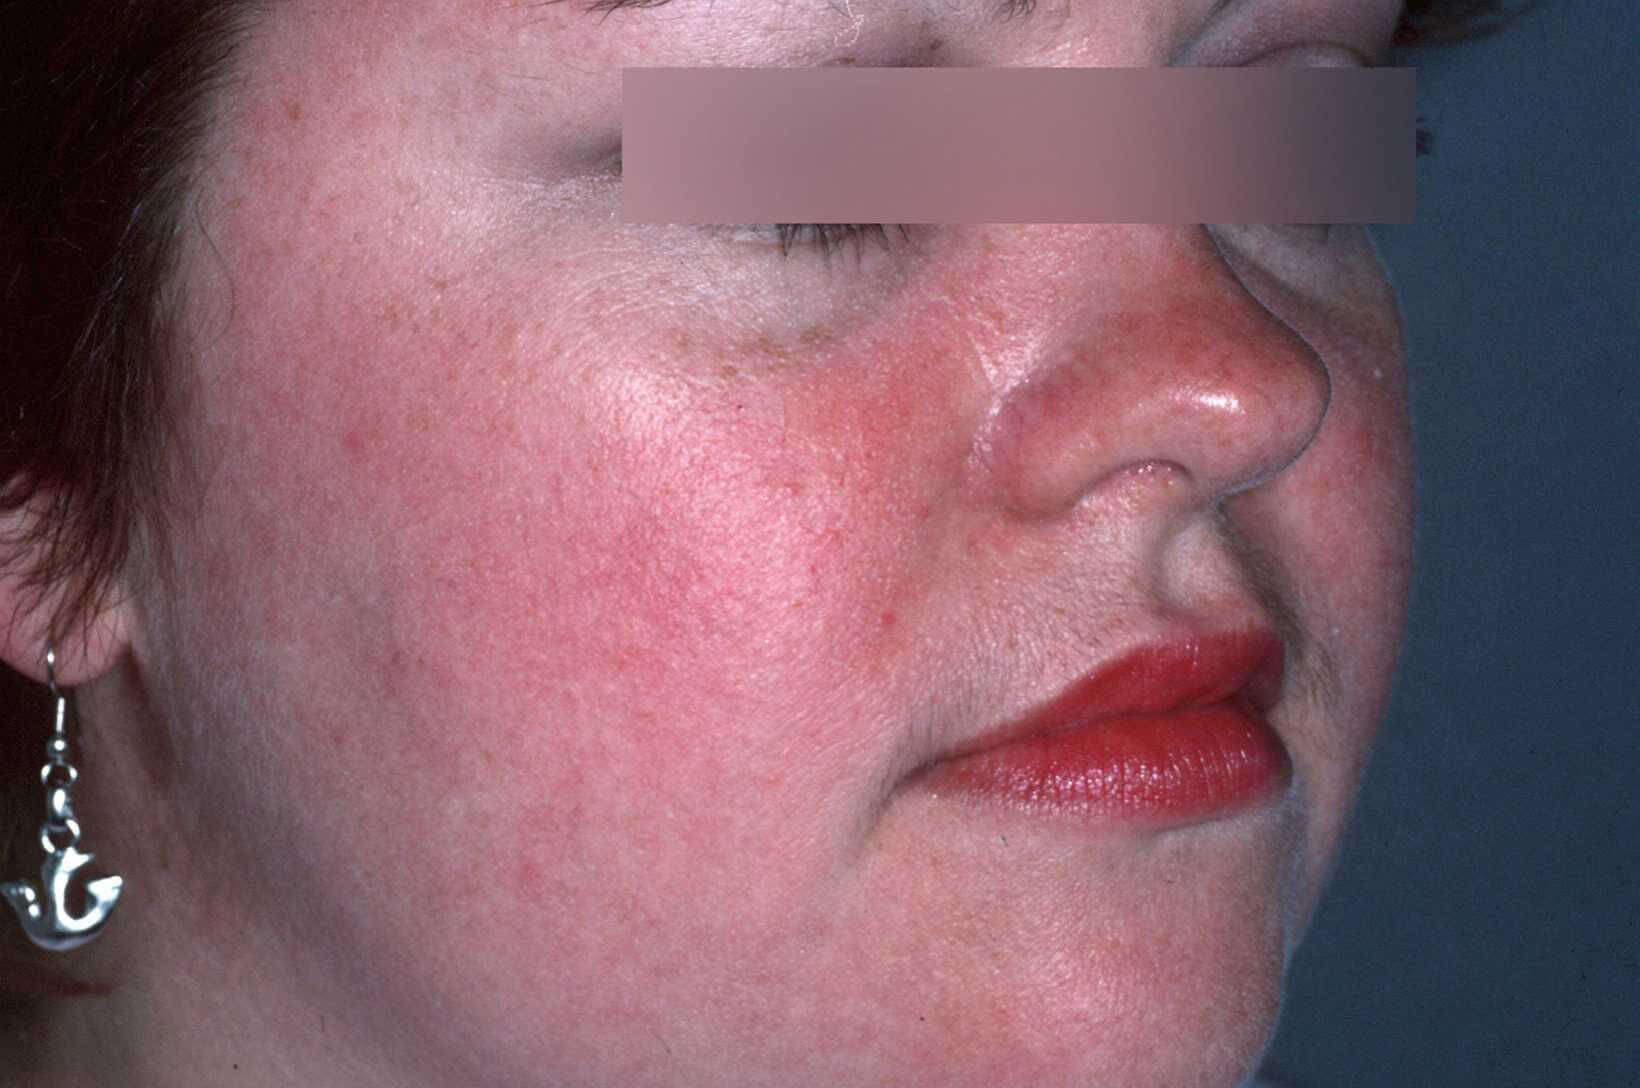 Urticaria Acute Photos - Dermatology Education